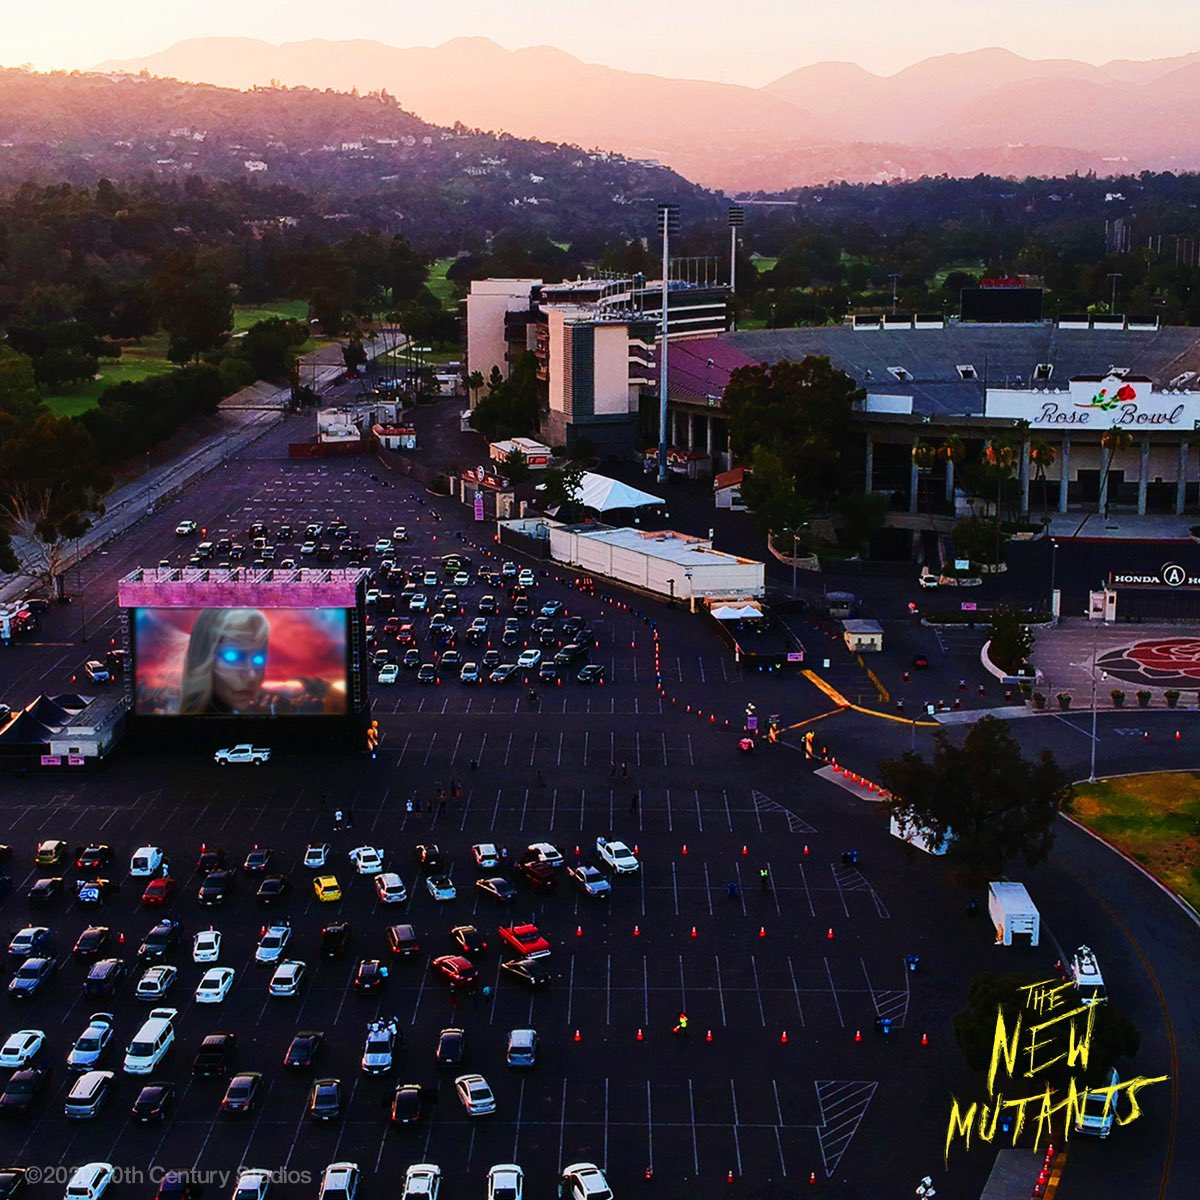 The new mutants preview weekend drive in theater